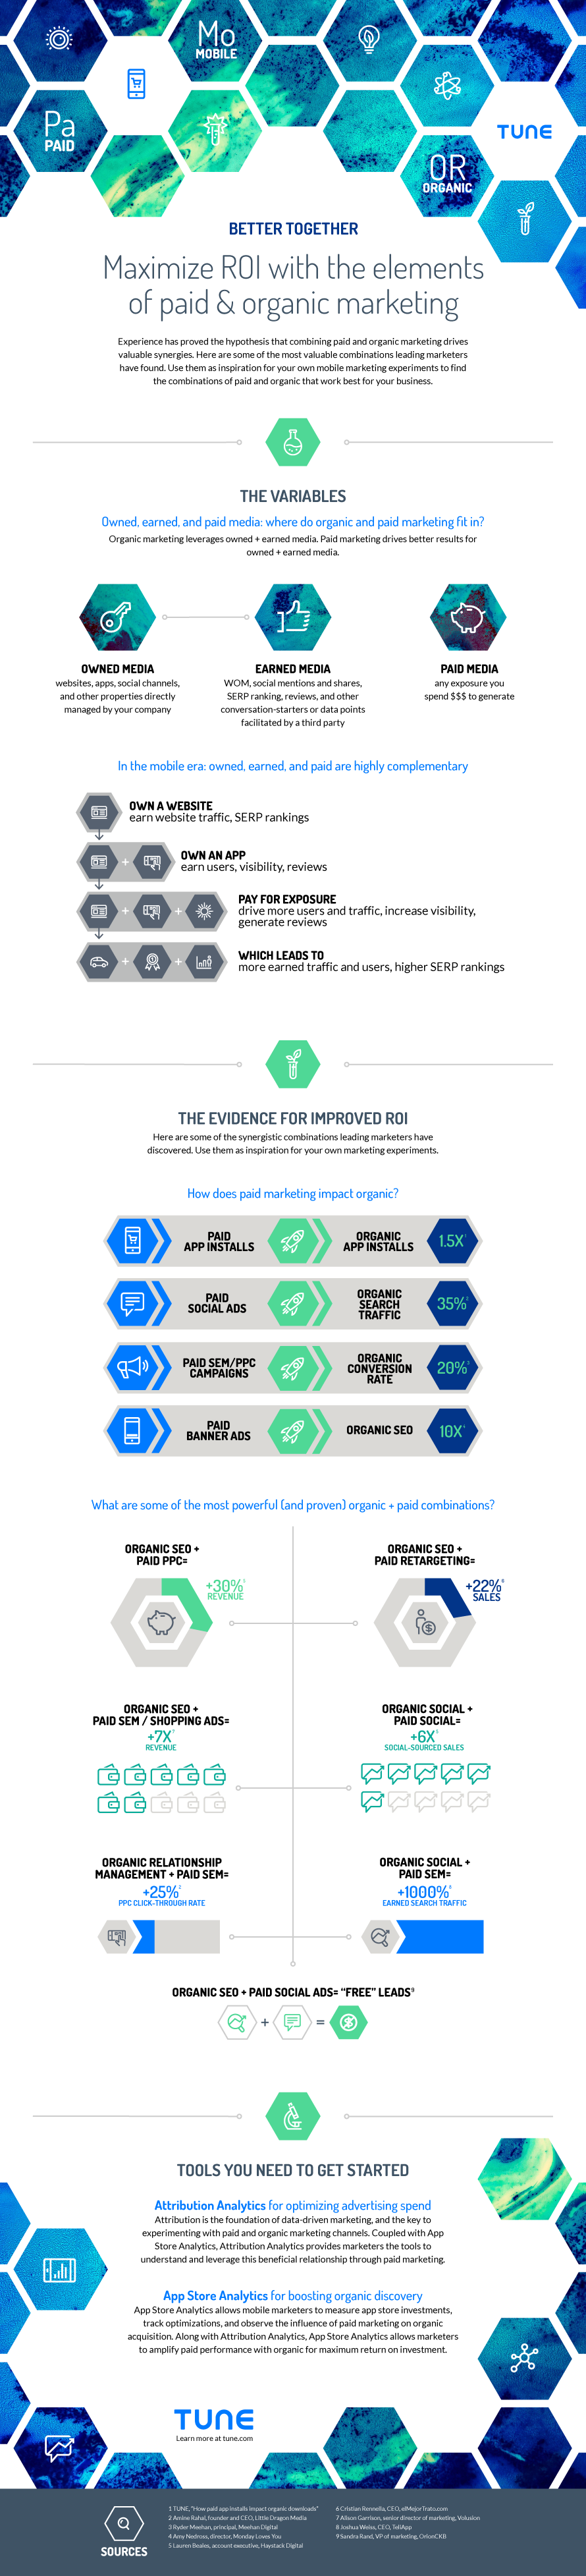 Better Together: The Elements of Paid & Organic Marketing infographic